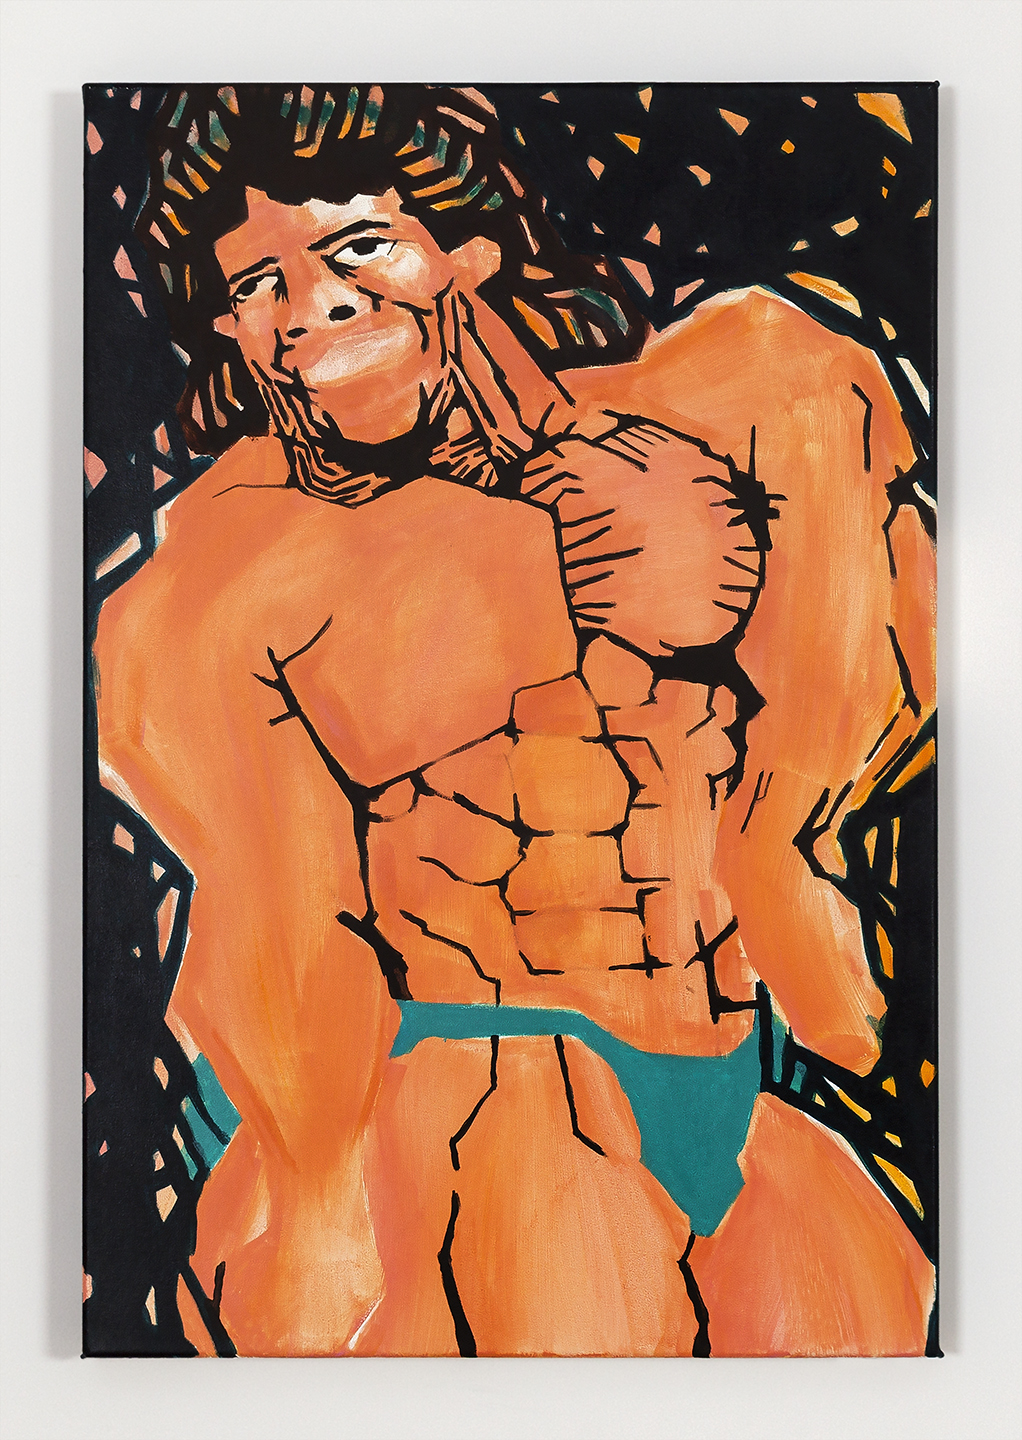 Koichi Sato Basic Muscle Pose 2, 2016 Acrylic on canvas 36h x 24w in 91.44h x 60.96w cm KS022